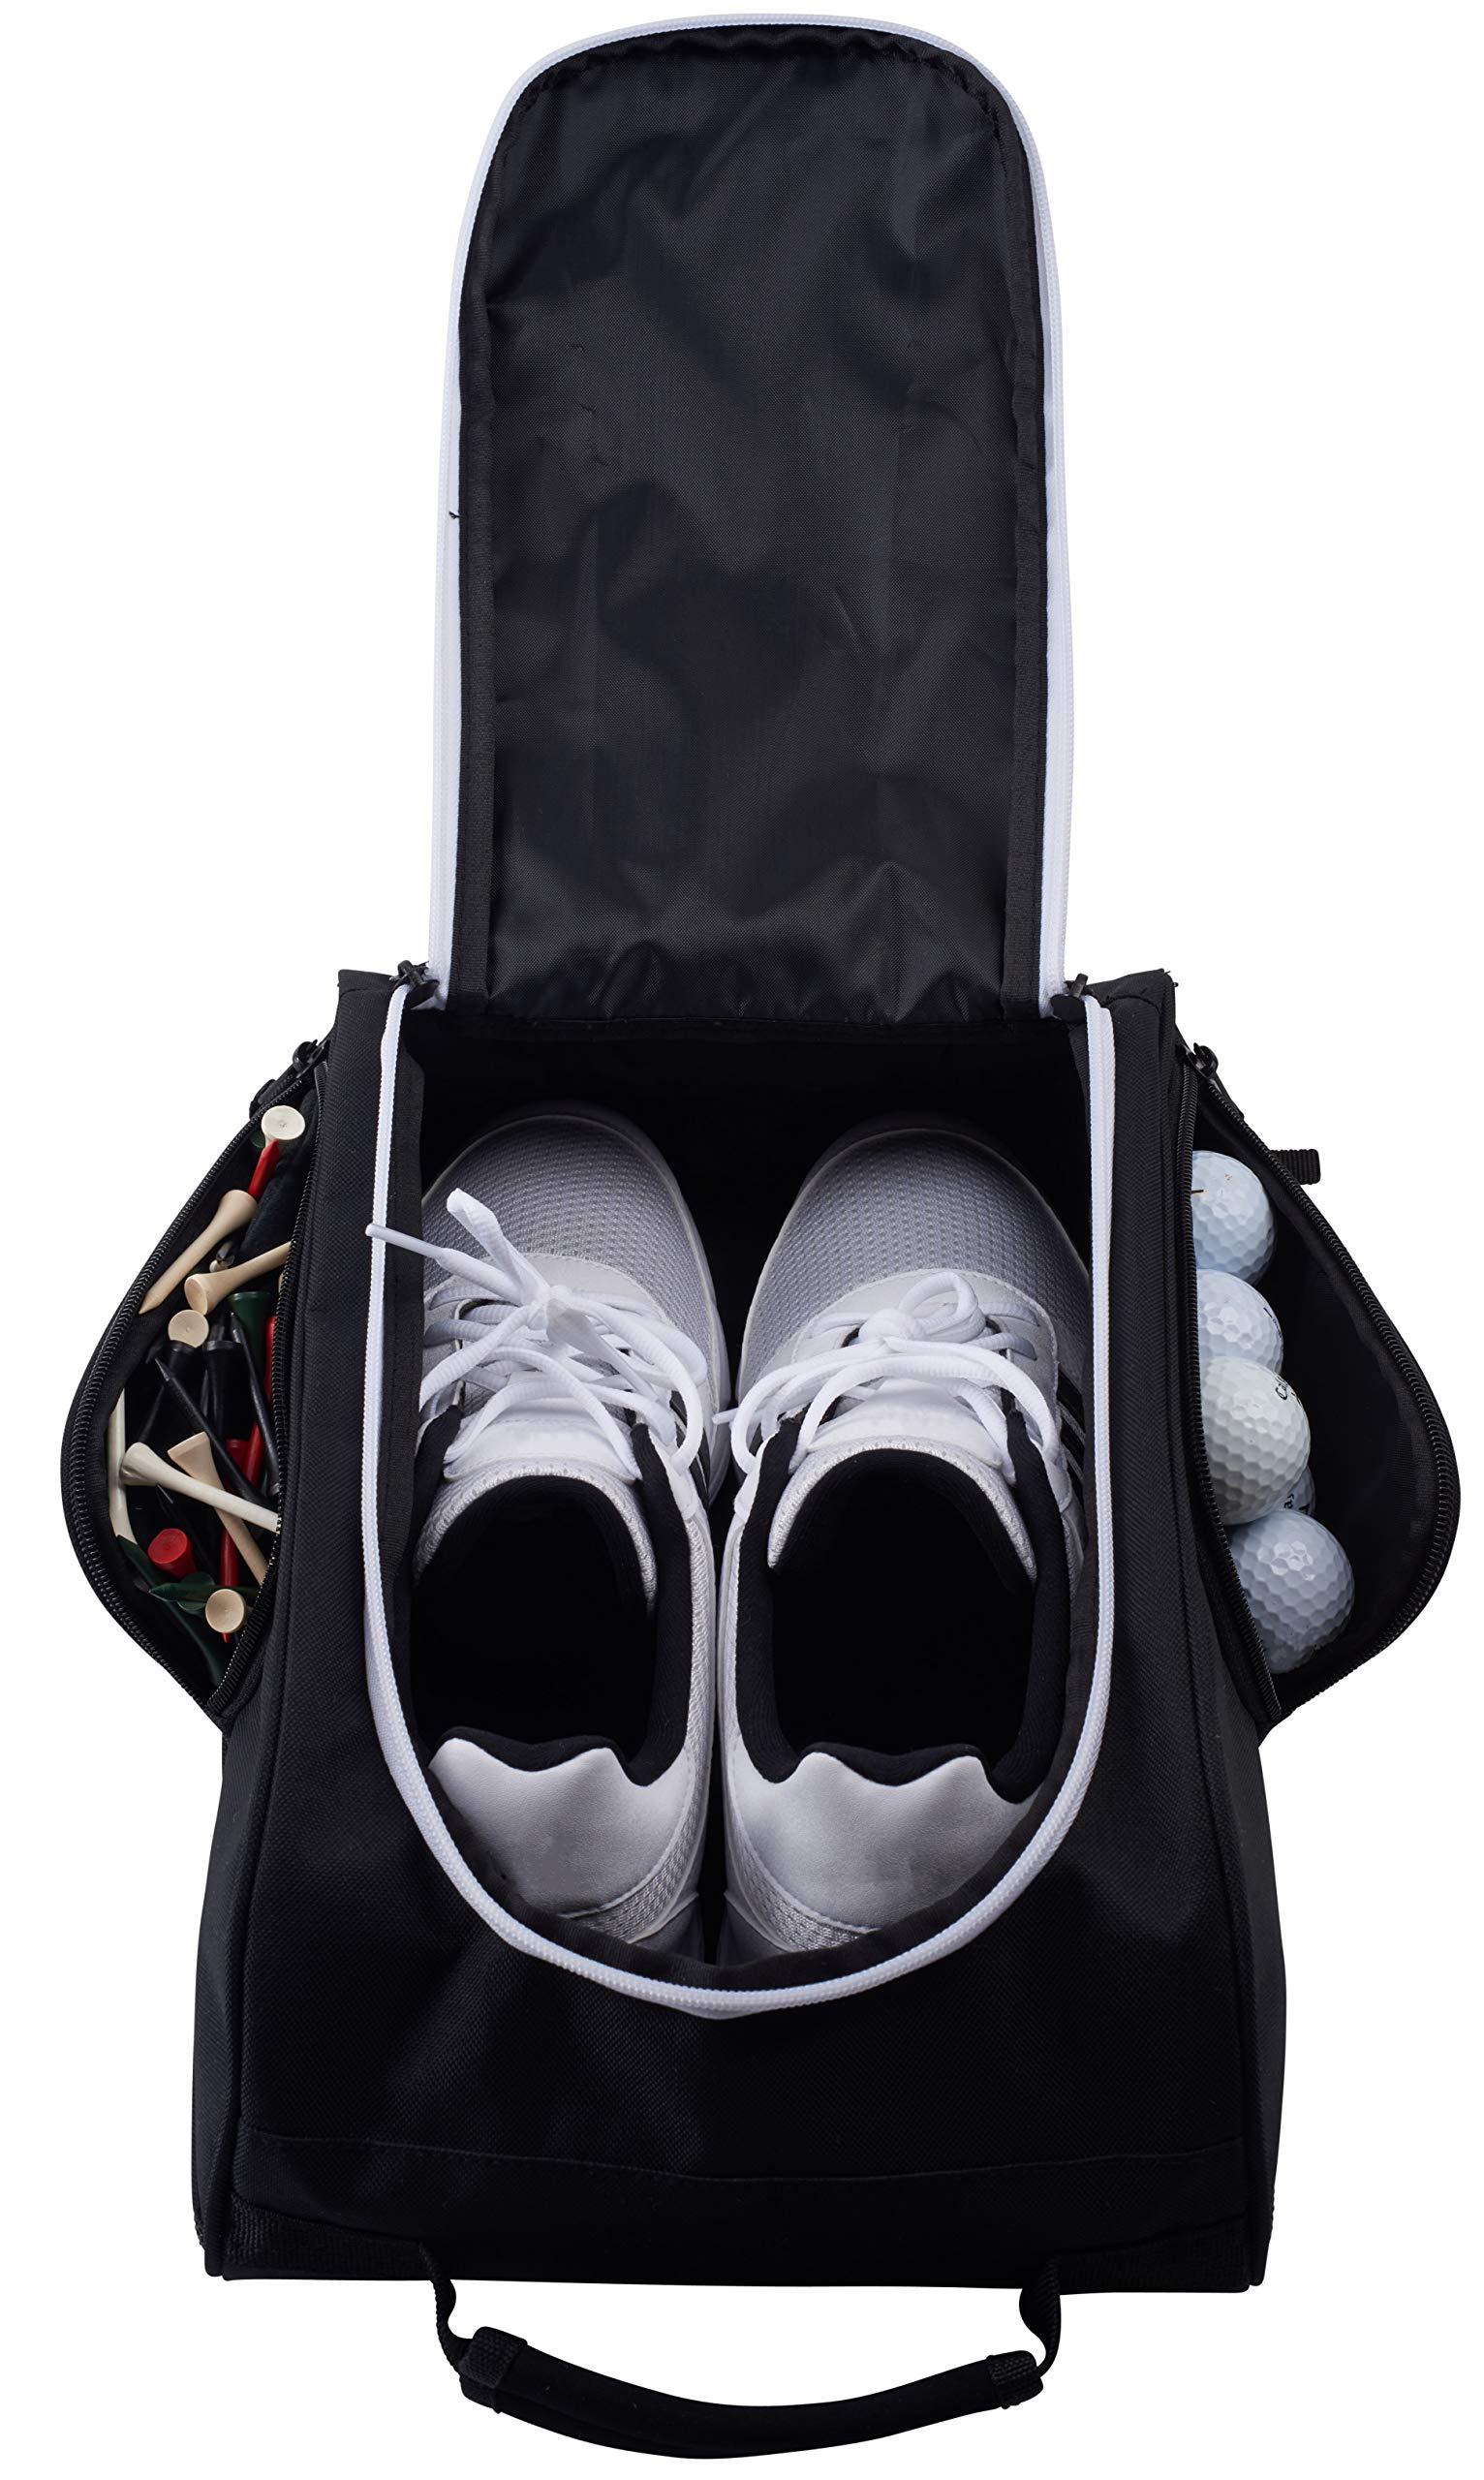 78b6b13c19 Athletico Golf Shoe Bag - Zippered Shoe Carrier Bags with Ventilation &  Outside Pocket for Socks, Tees, etc.